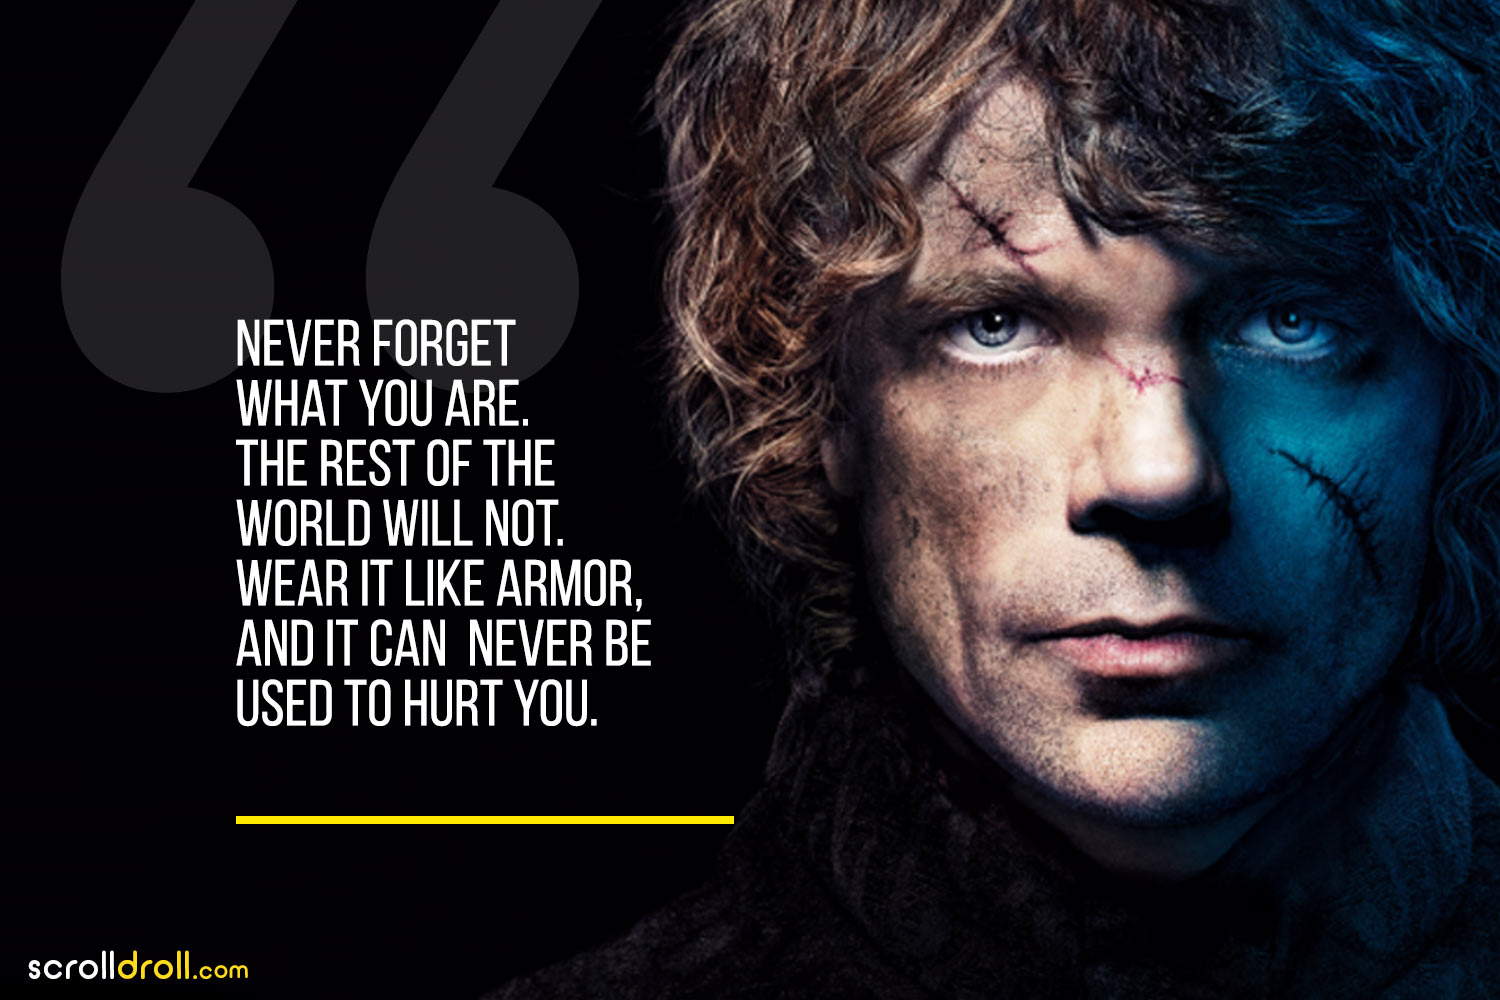 Tyrion-Never forget what you are,the rest of the world will not wear it like armor, and it can never be used to hurt you